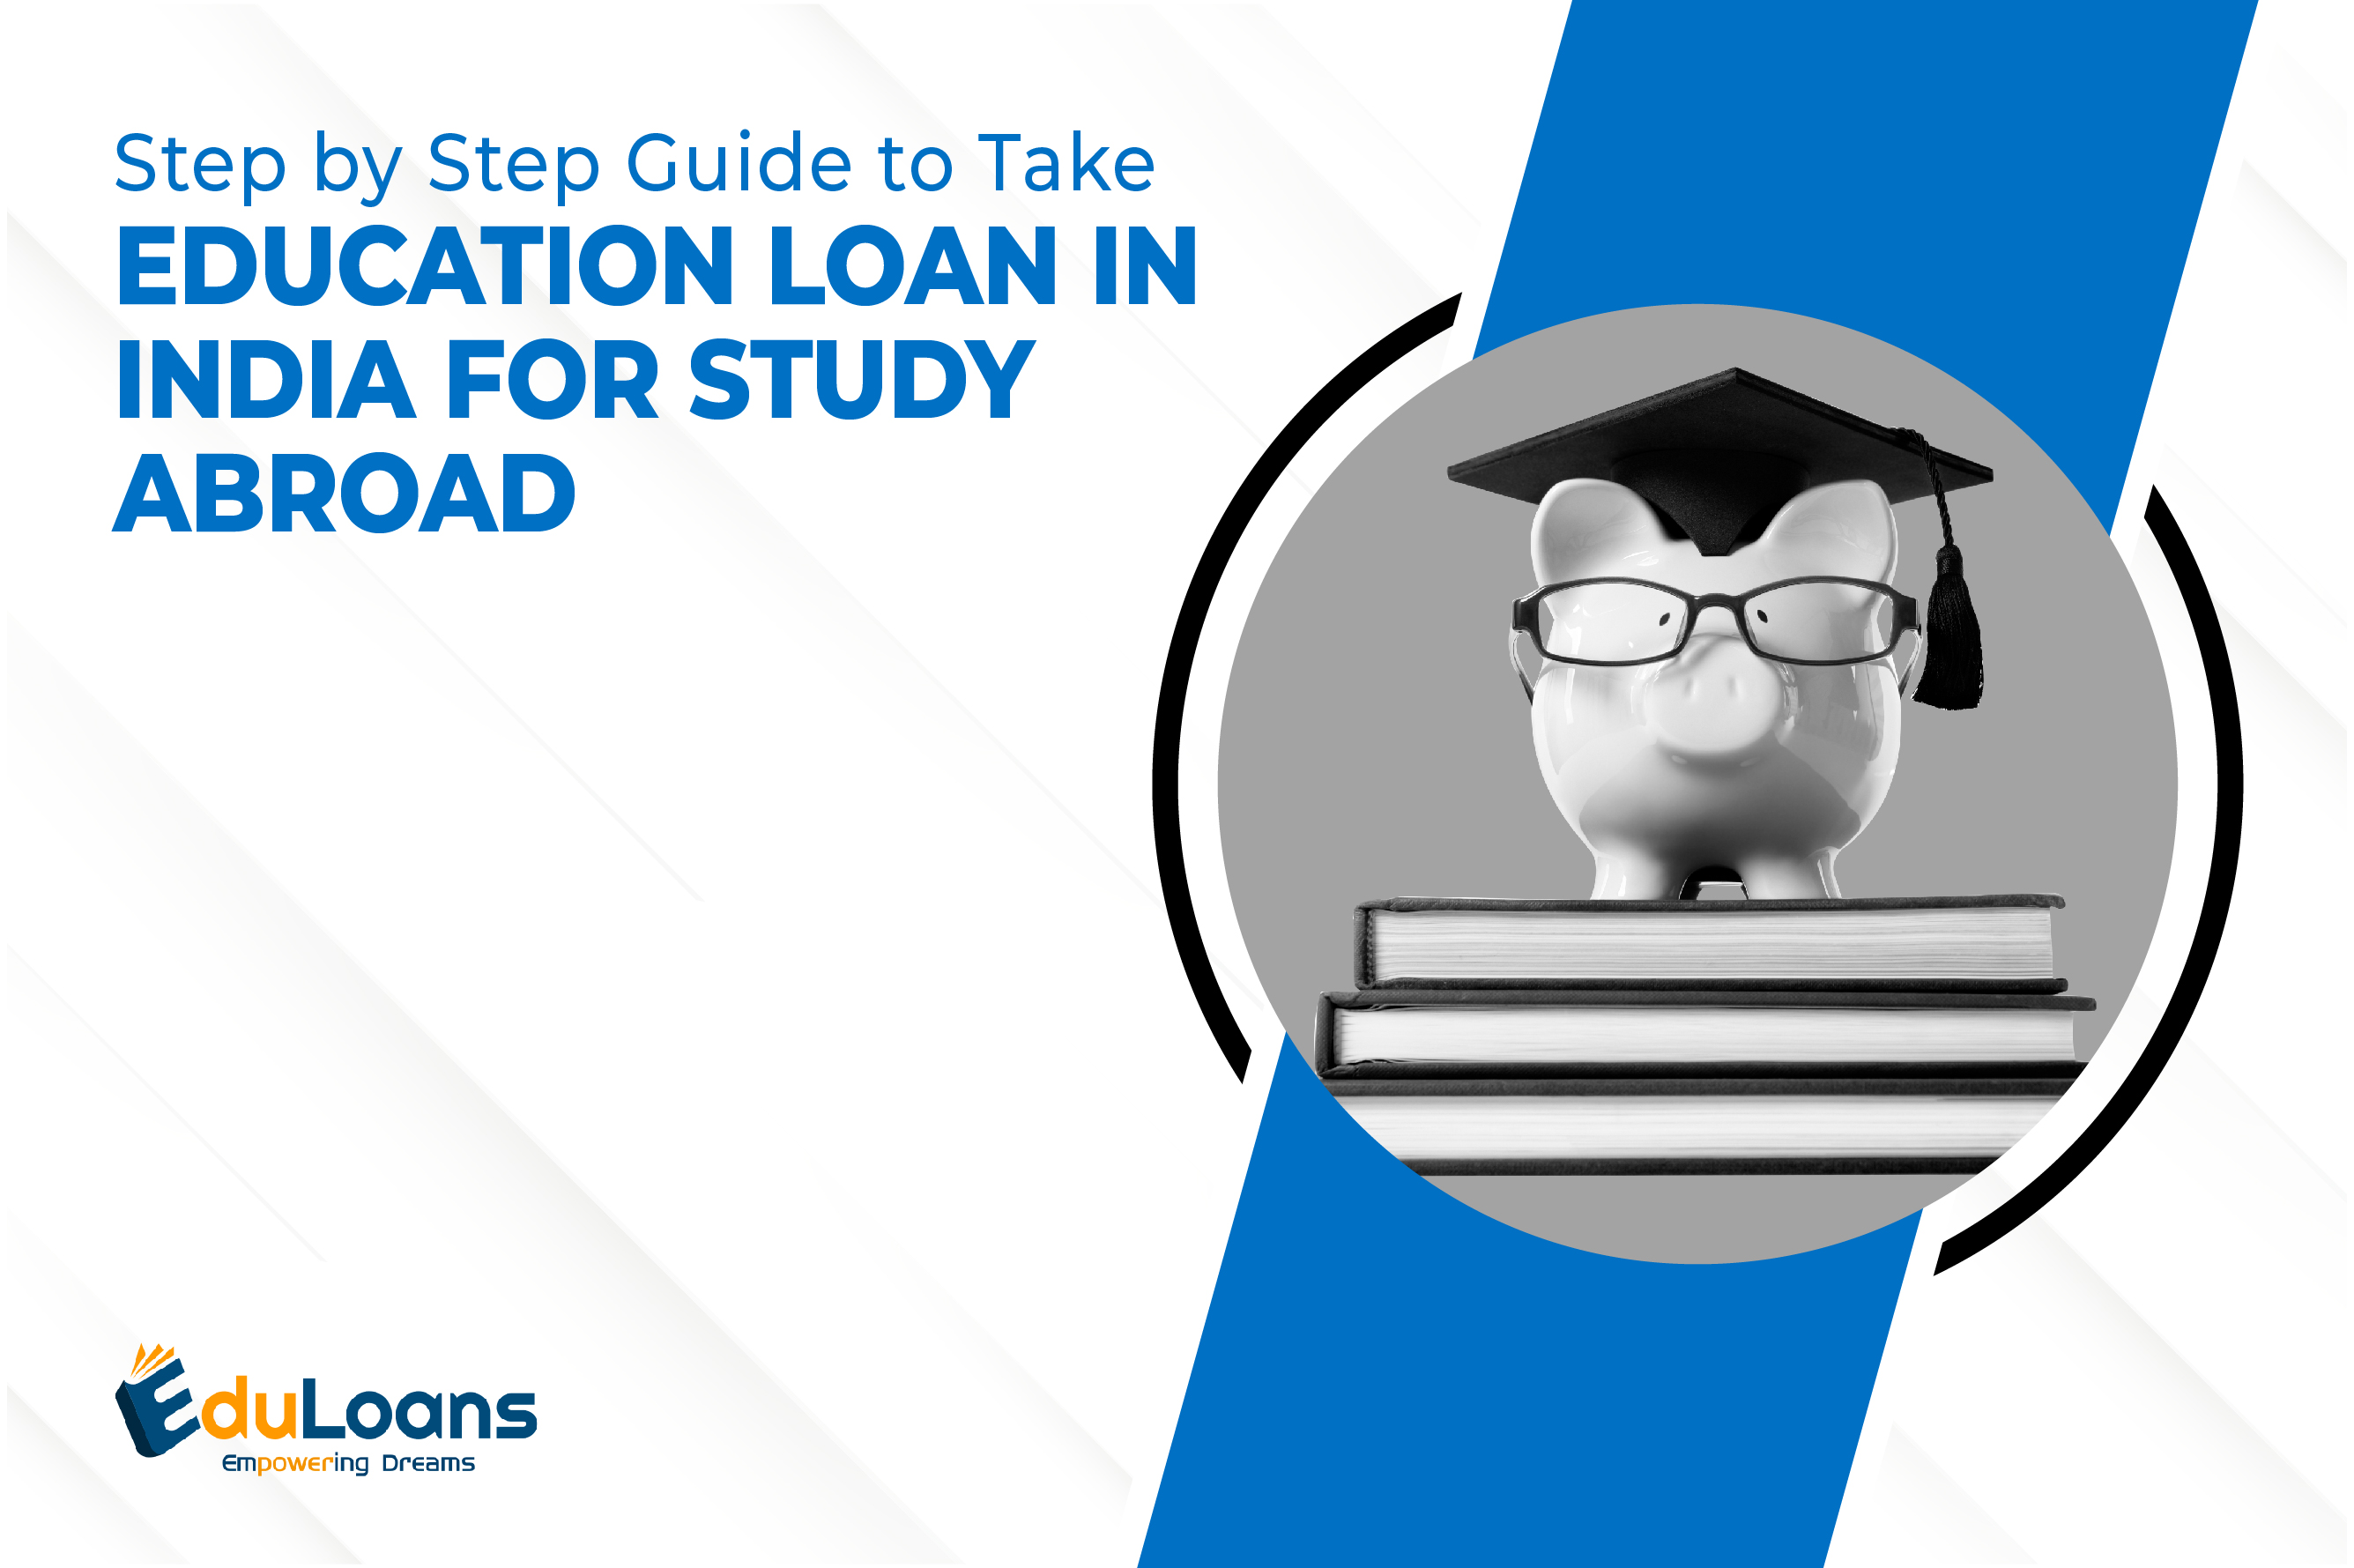 Step by Step Guide to Take Education loan In India for Study Abroad